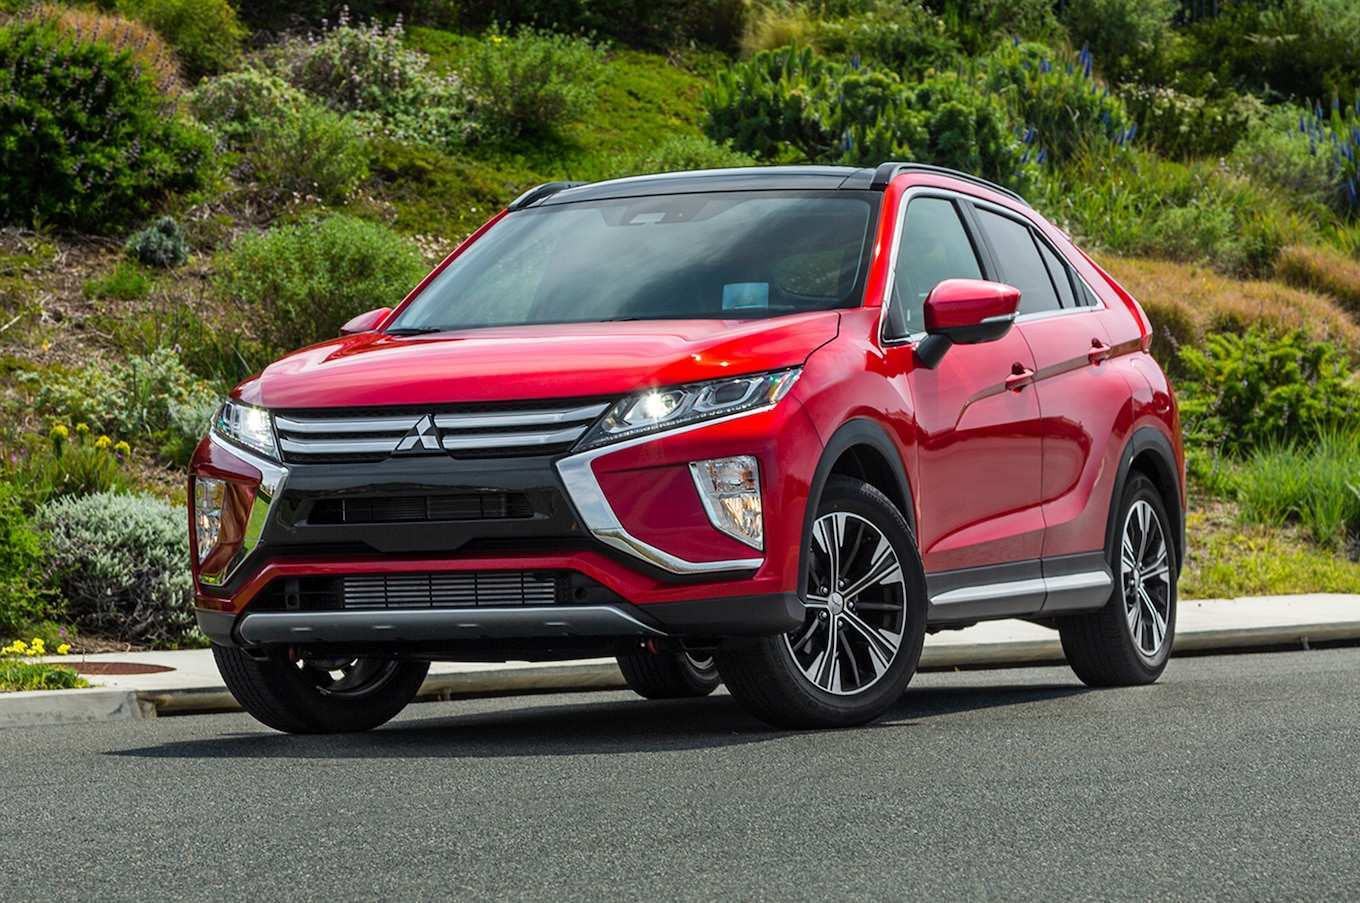 16 Best Mitsubishi New Models 2020 Speed Test